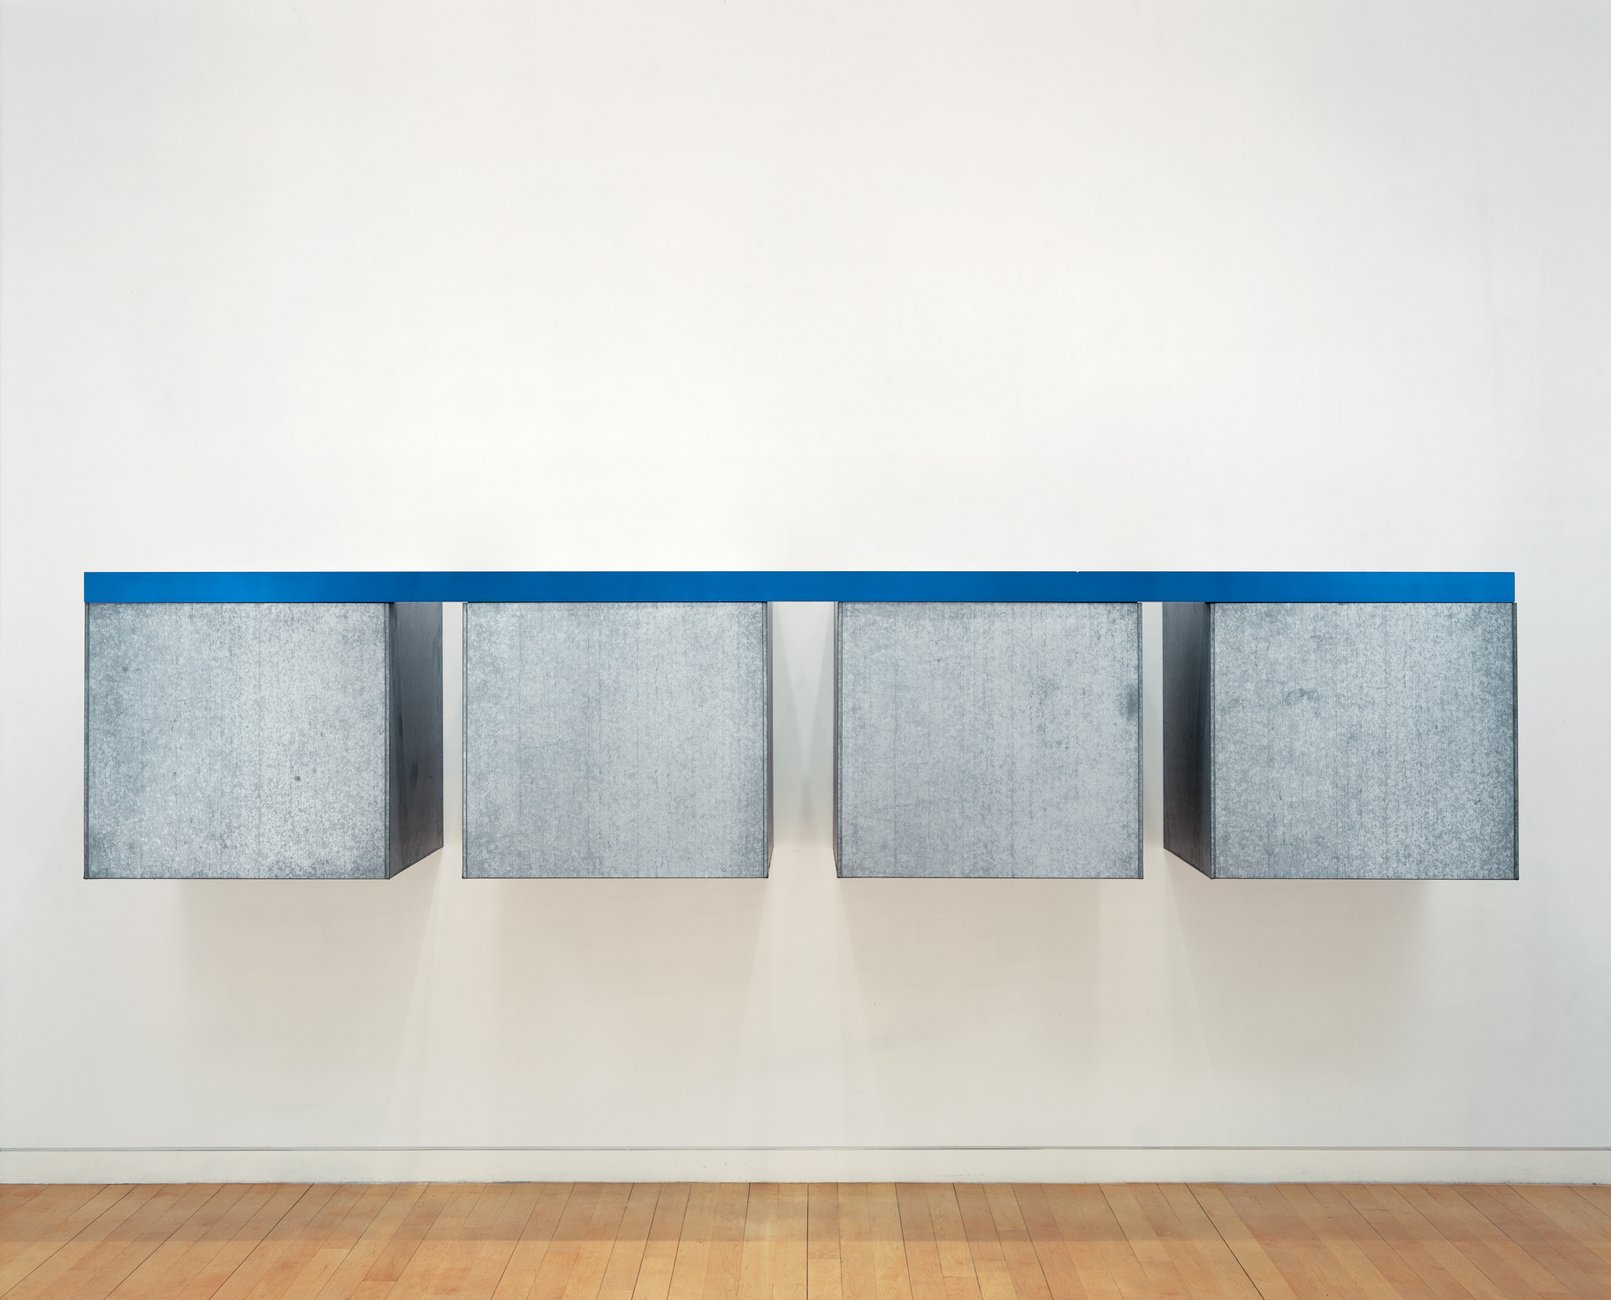 Artwork image, Donald Judd's To Susan Buckwalter